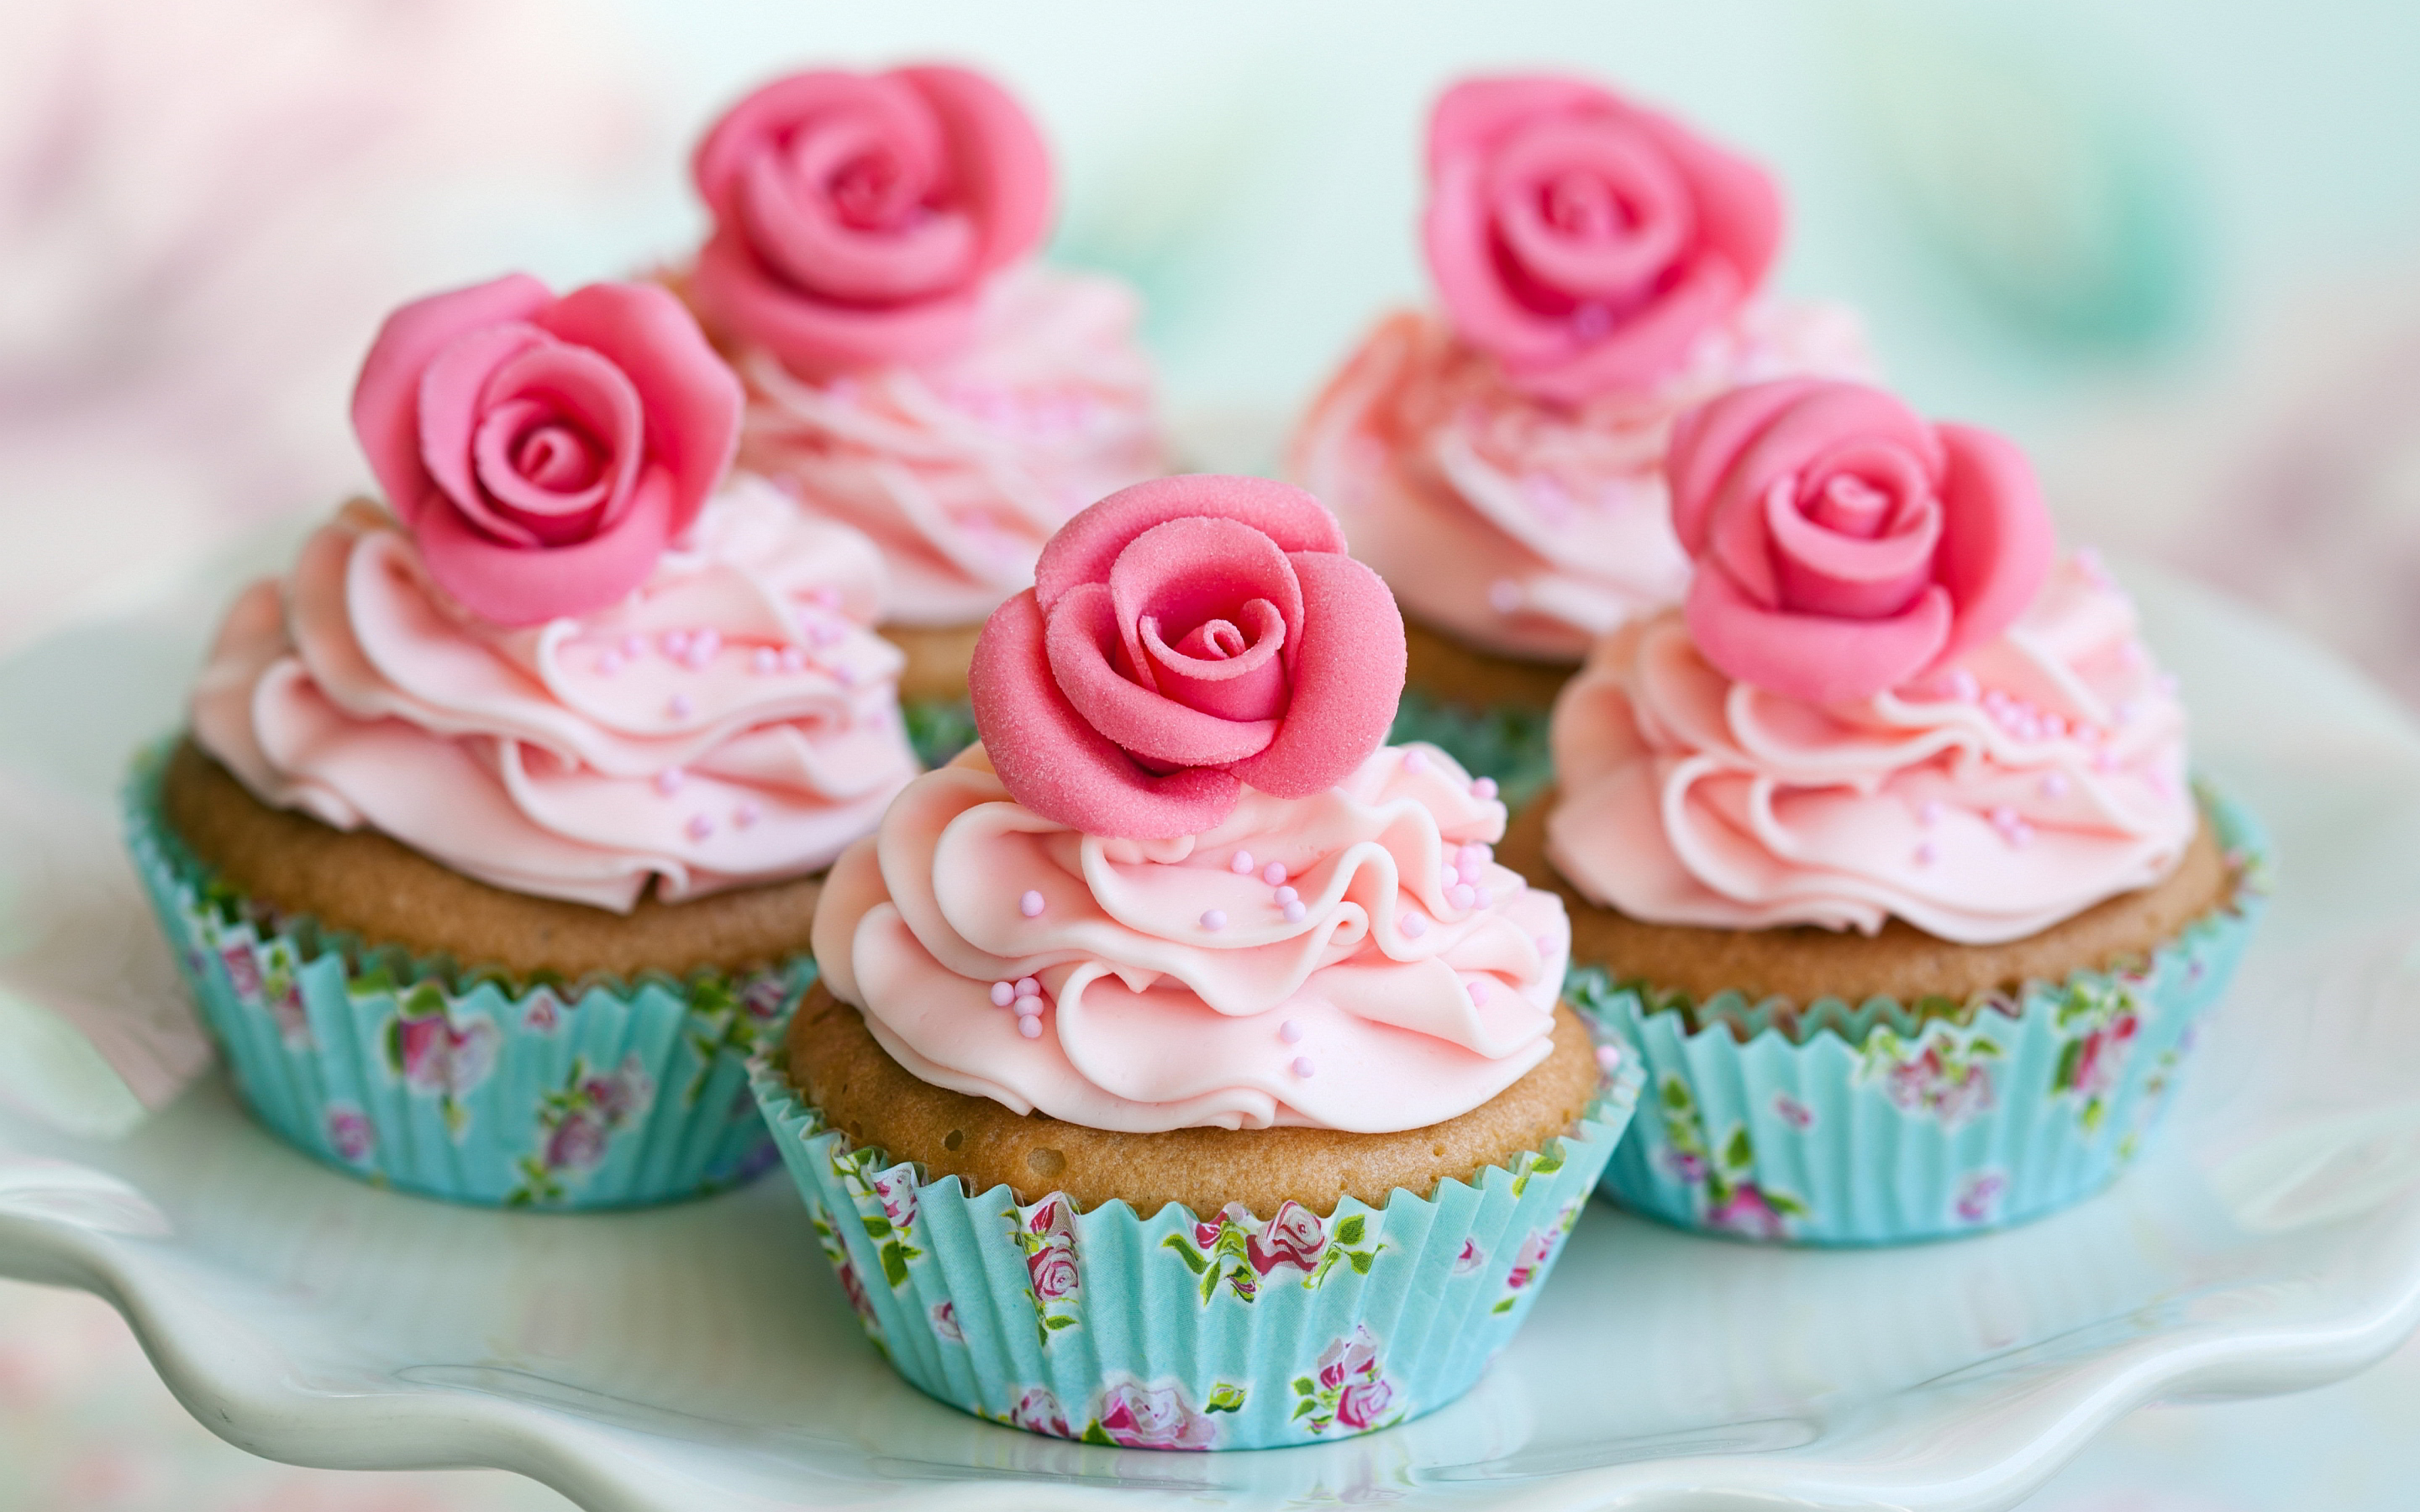 2880x1800 HD Widescreen Wallpaper - cupcake | 2880x1800 | 965 kB ...